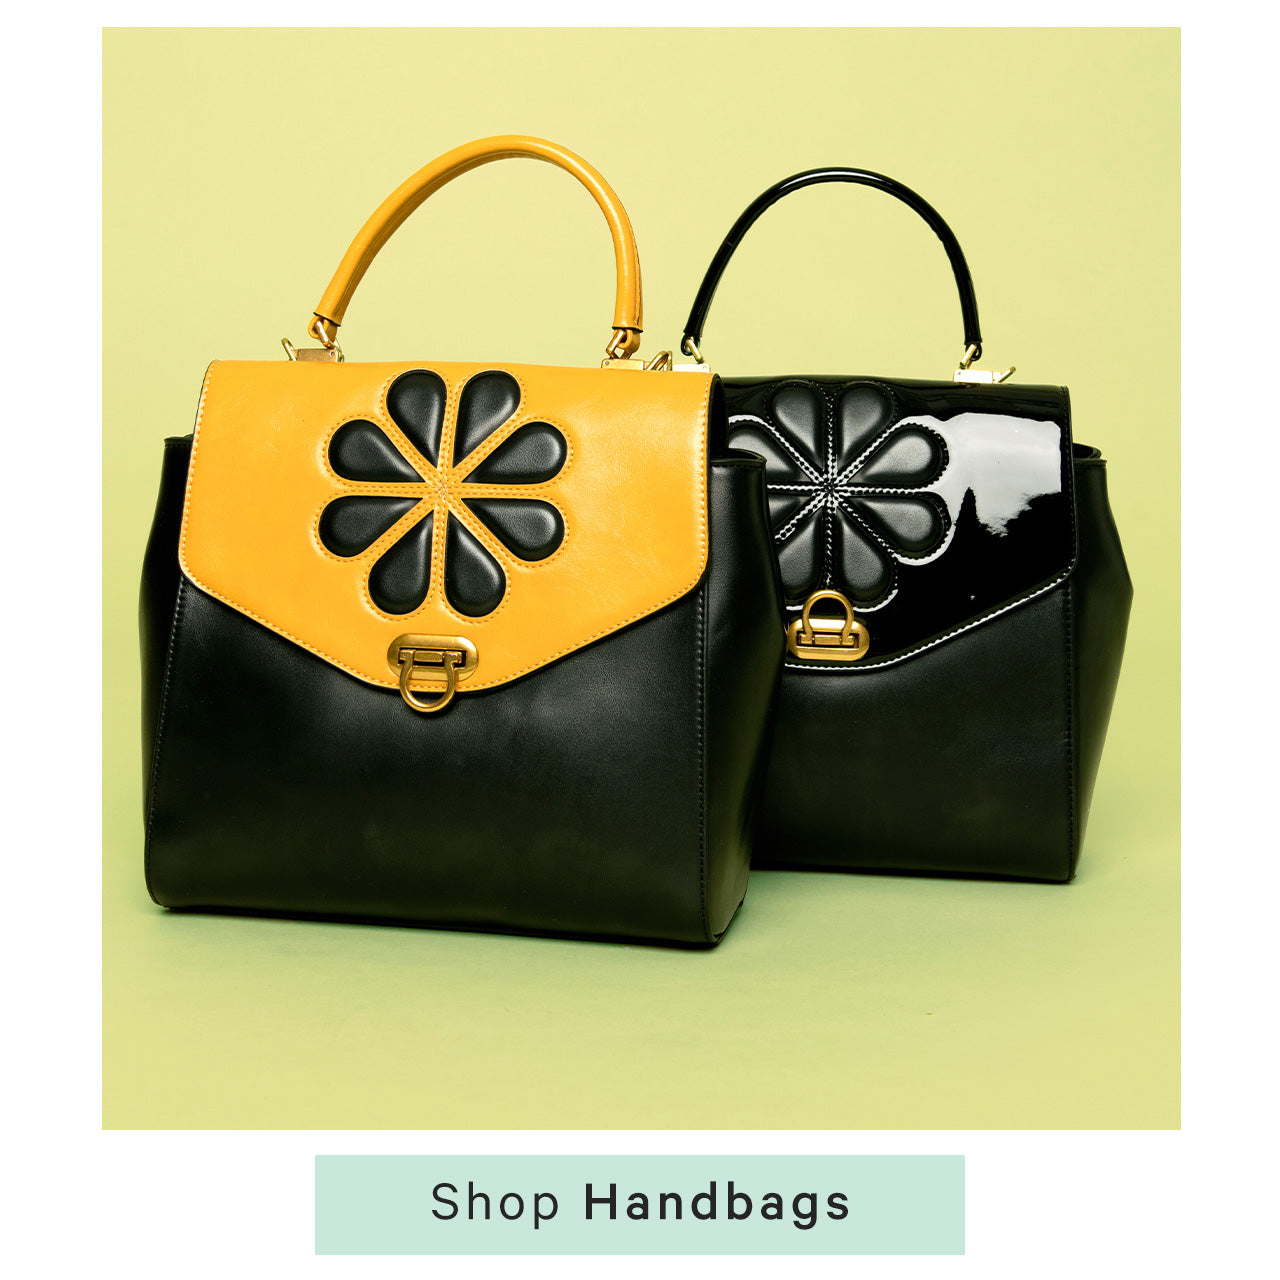 Unique Vintage — Shop Handbags